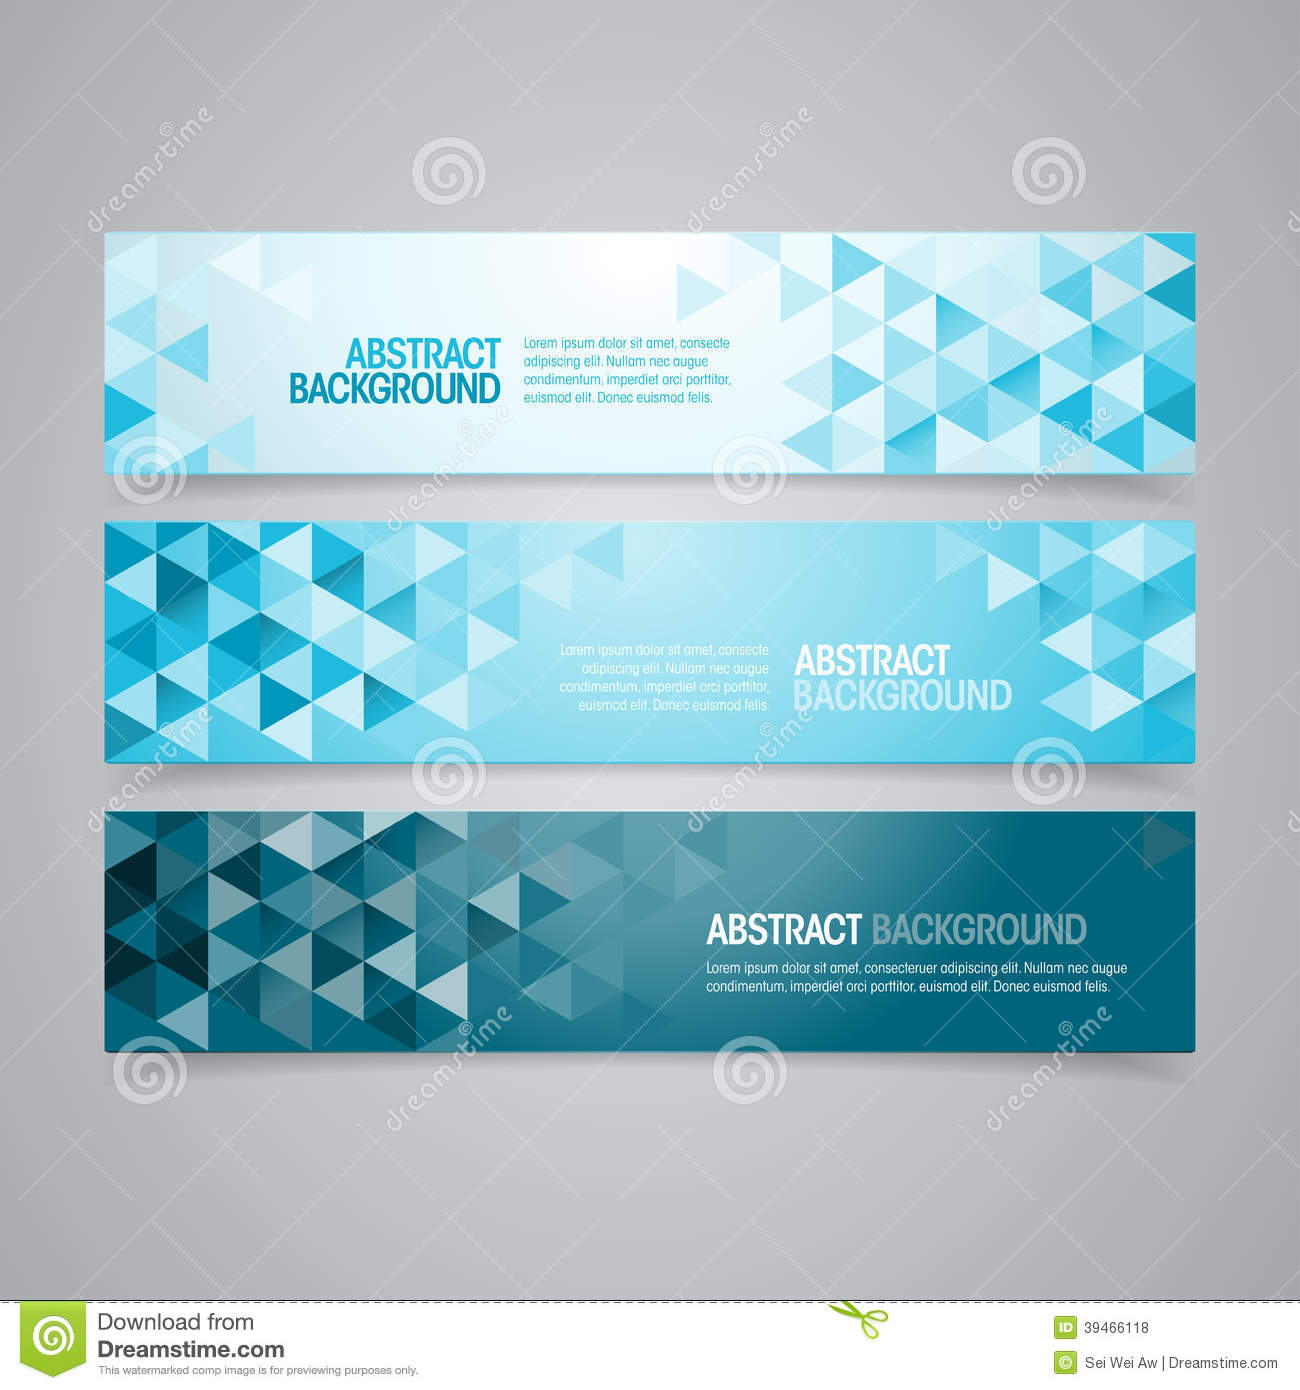 Background Banner Banners Health Care Banners